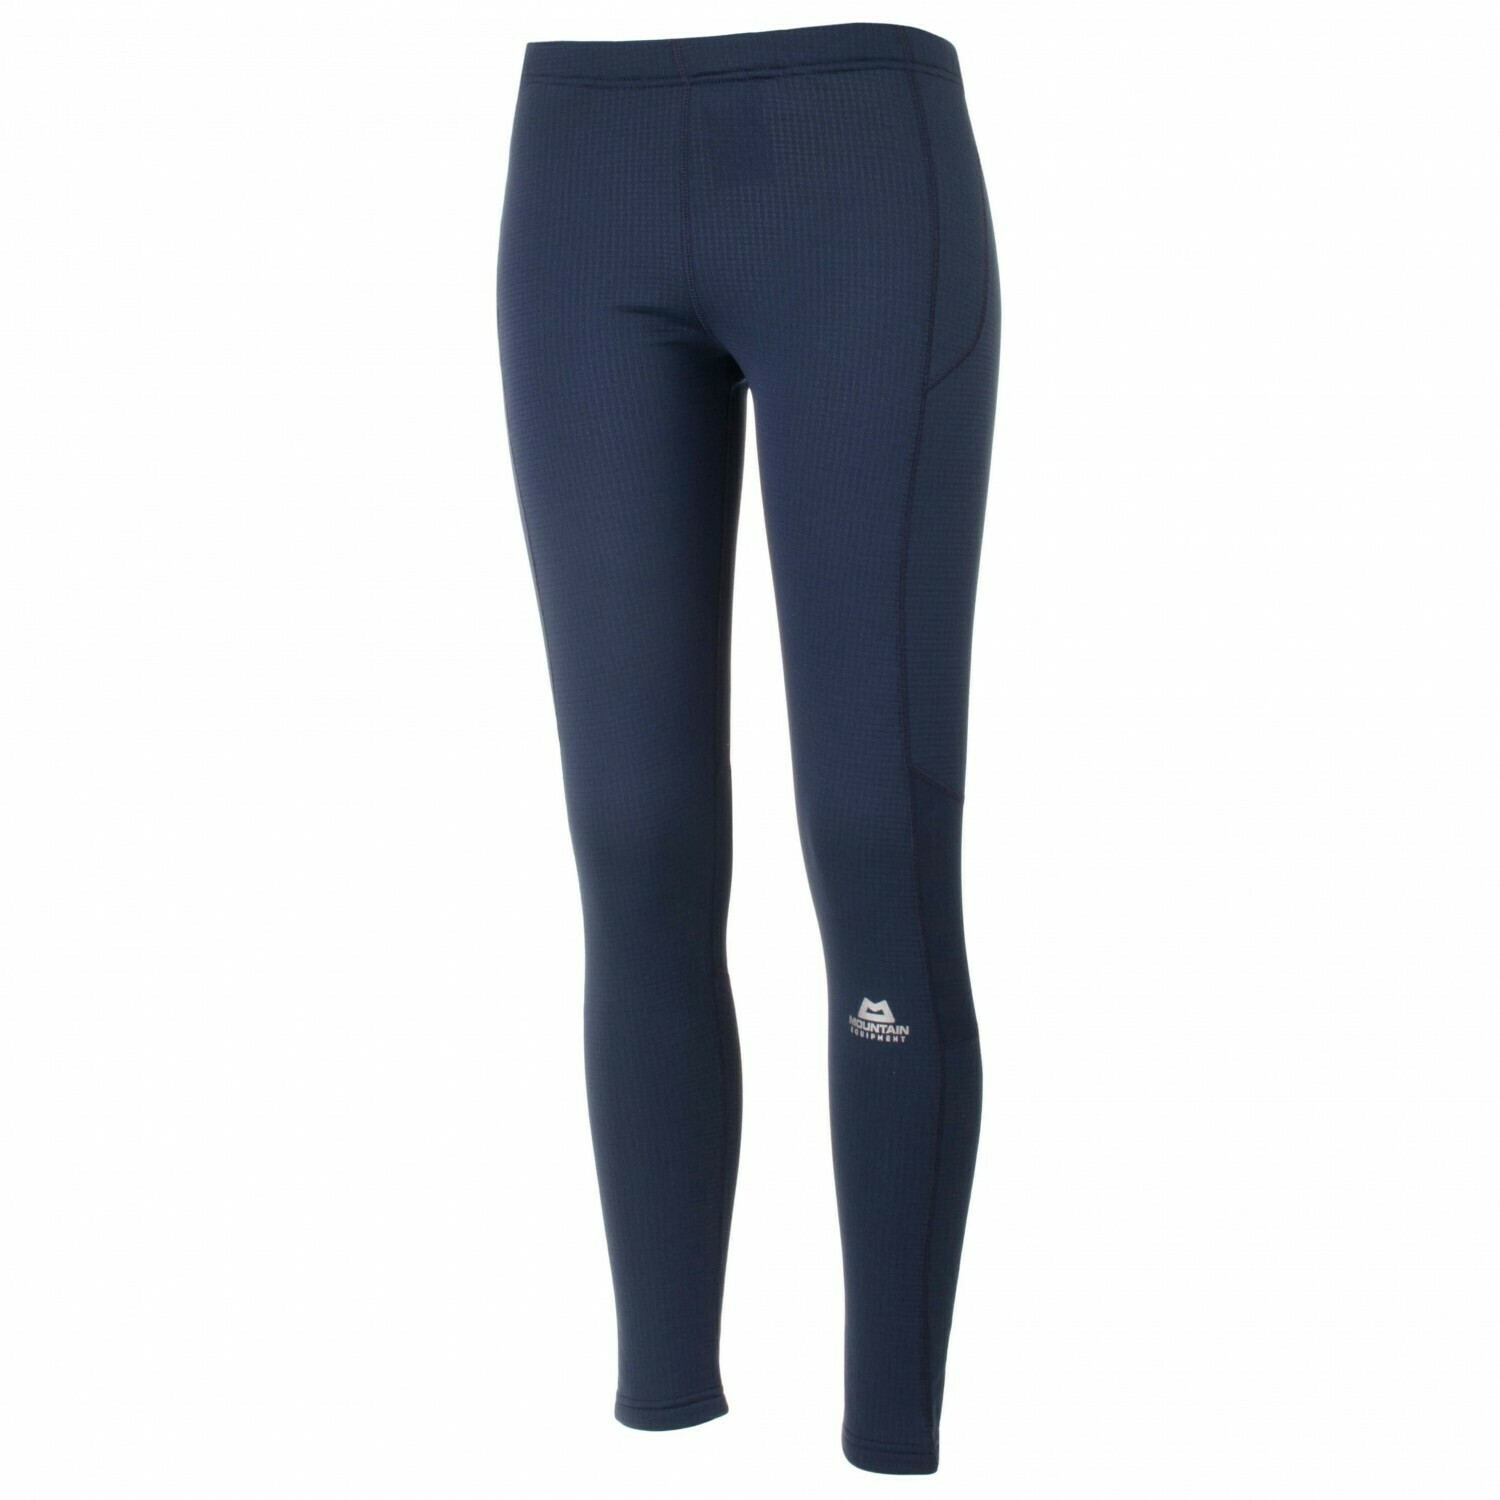 MOUNTAIN EQUIPMENT SOLAR ECLIPSE THERMAL PANT LARGE